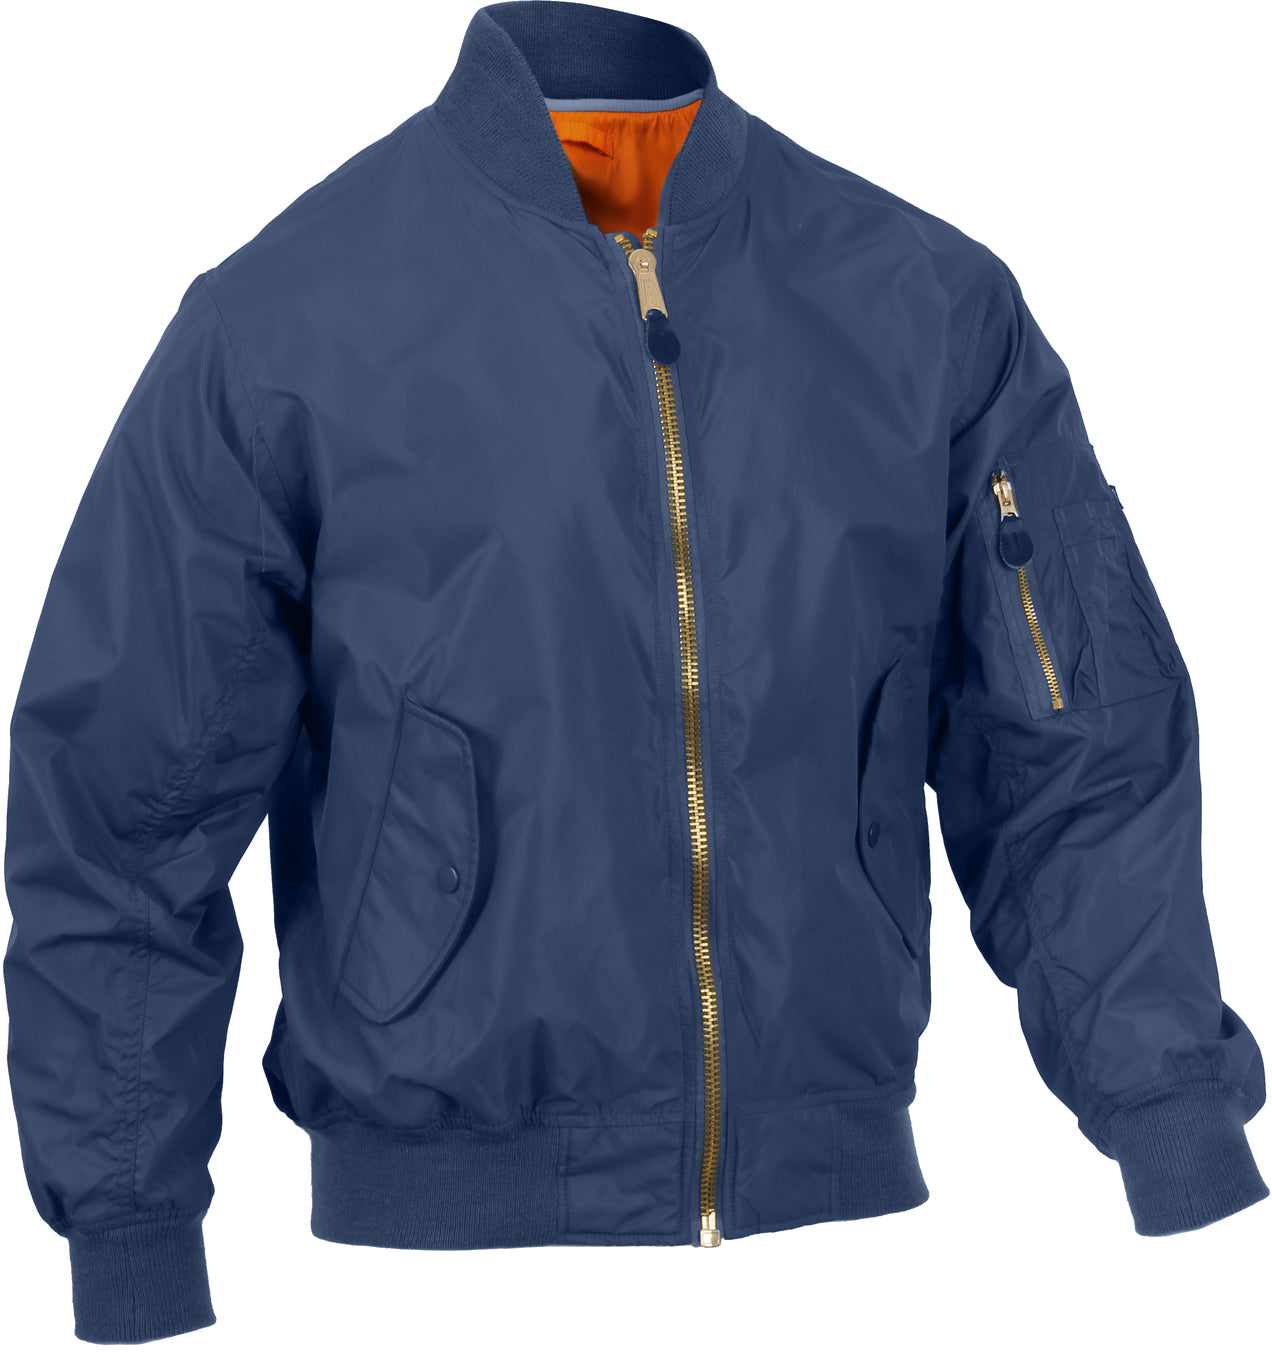 Navy Blue - Lightweight Air Force MA-1 Reversible Bomber Coat Flight Jacket